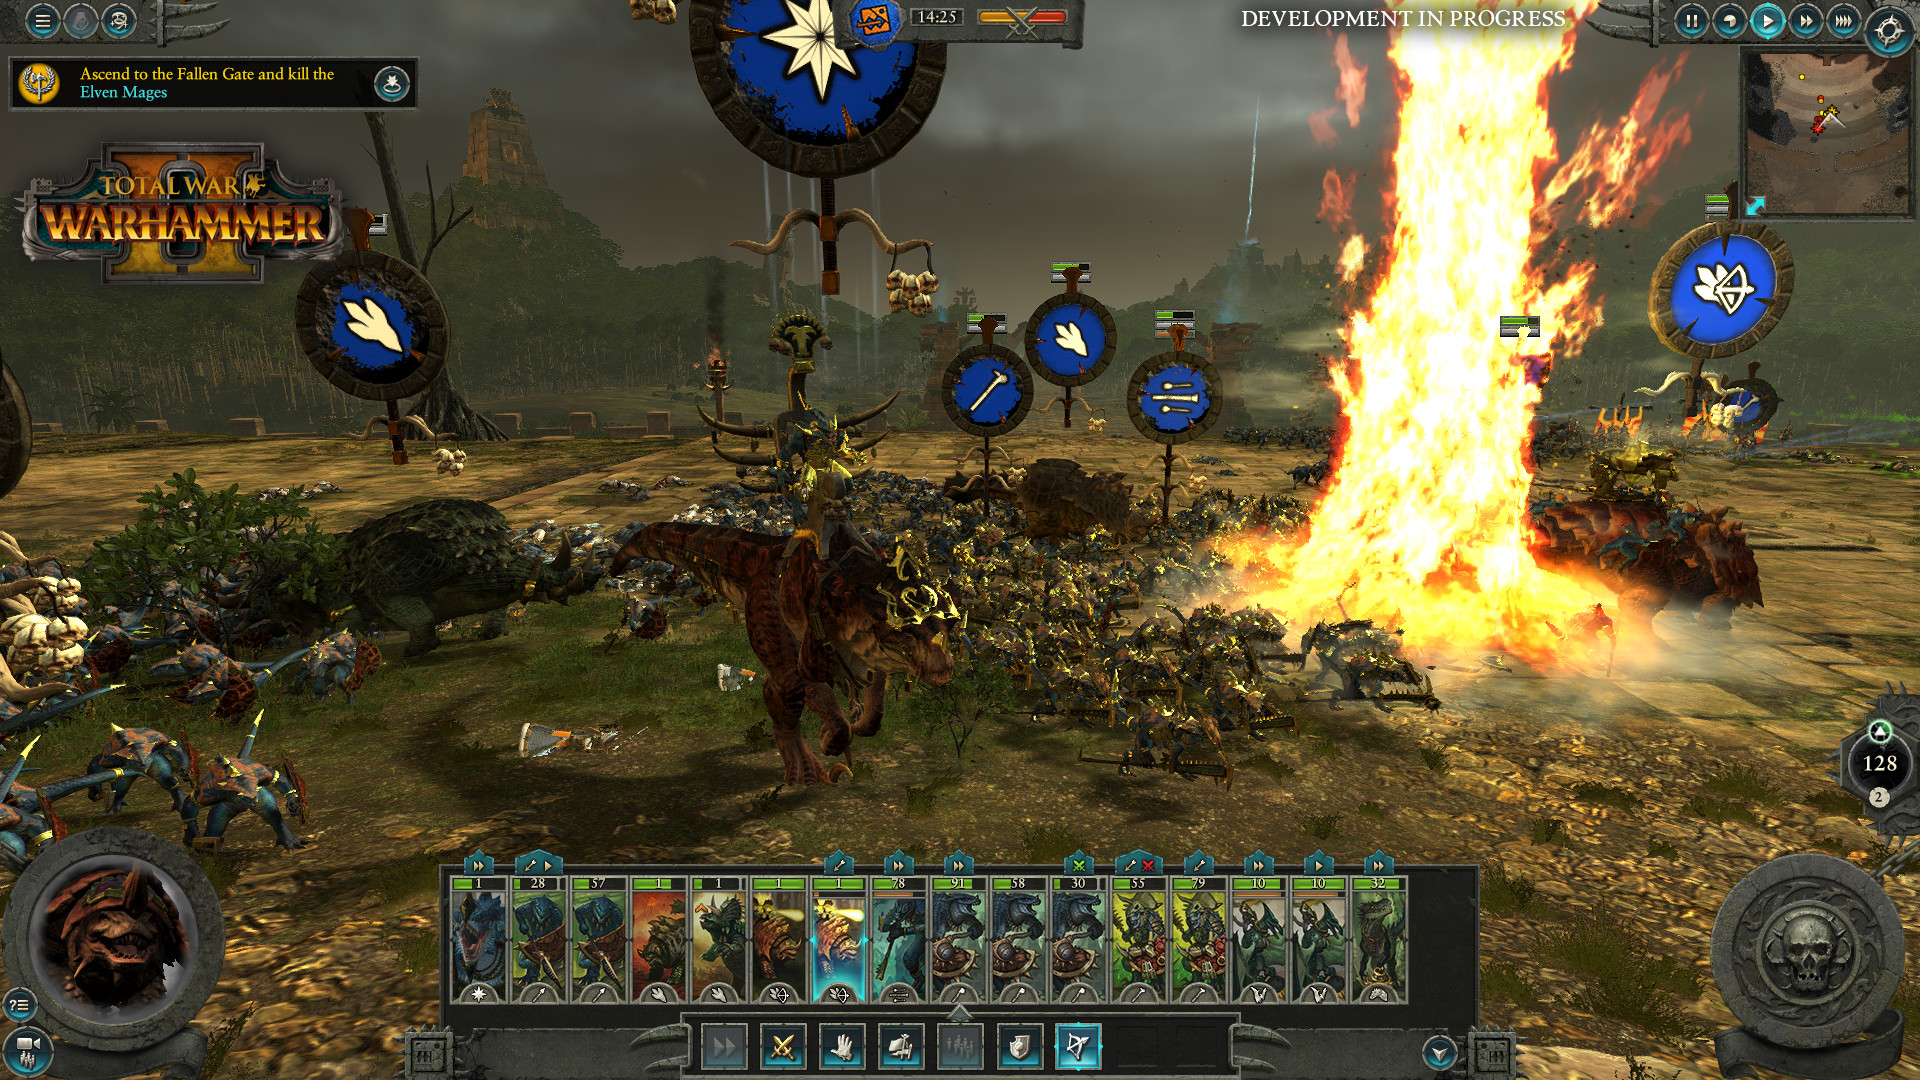 A screenshot of a dinosaur battle scene from Total War: Warhammer II.